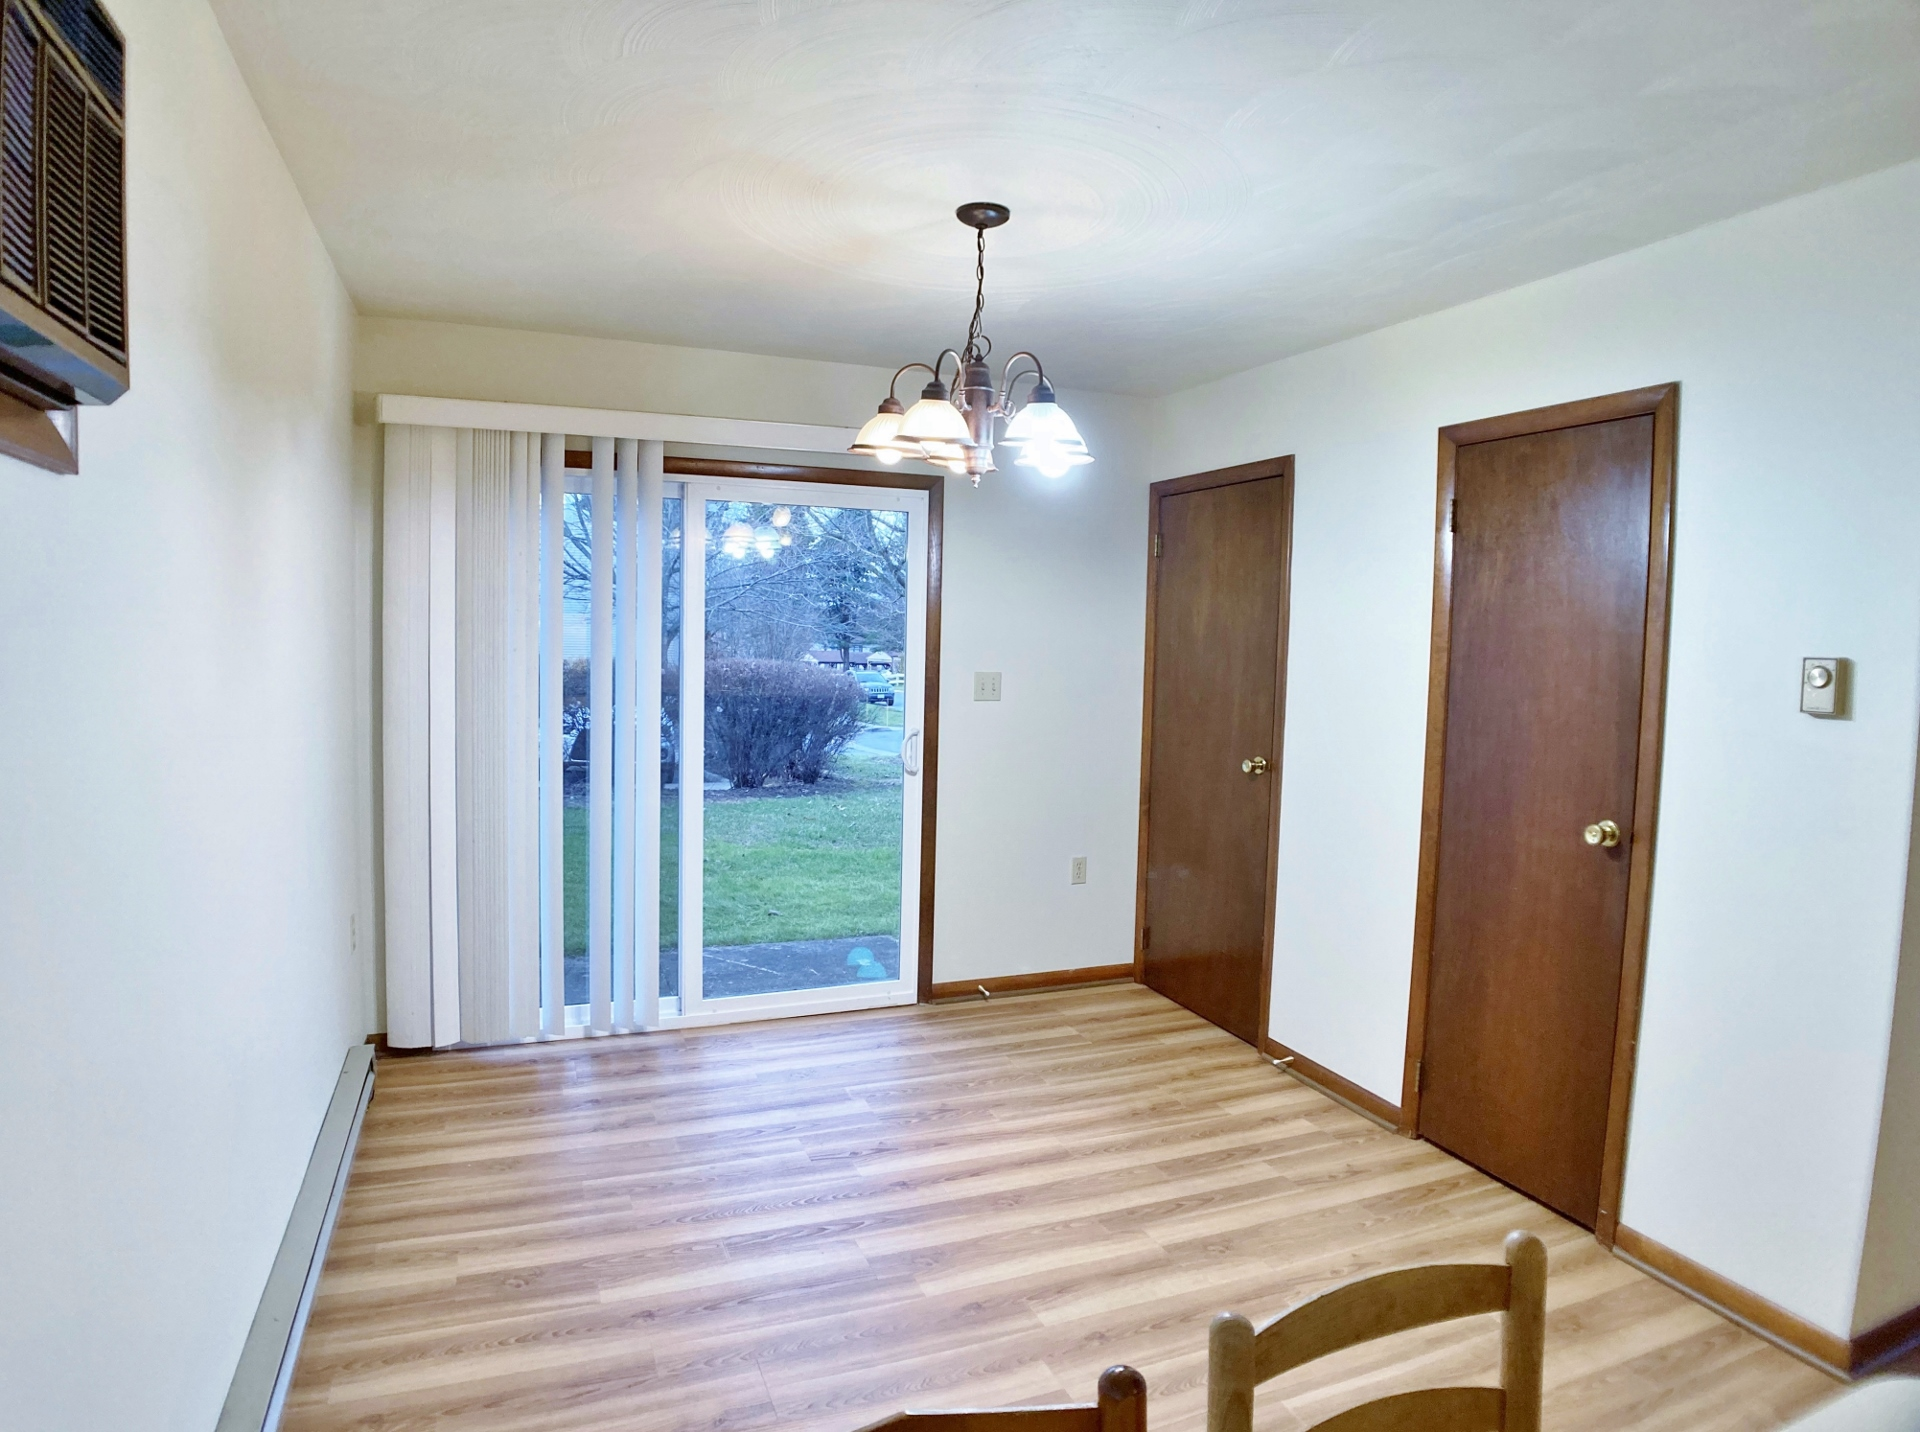 918-6 Southgate Drive Dining Room